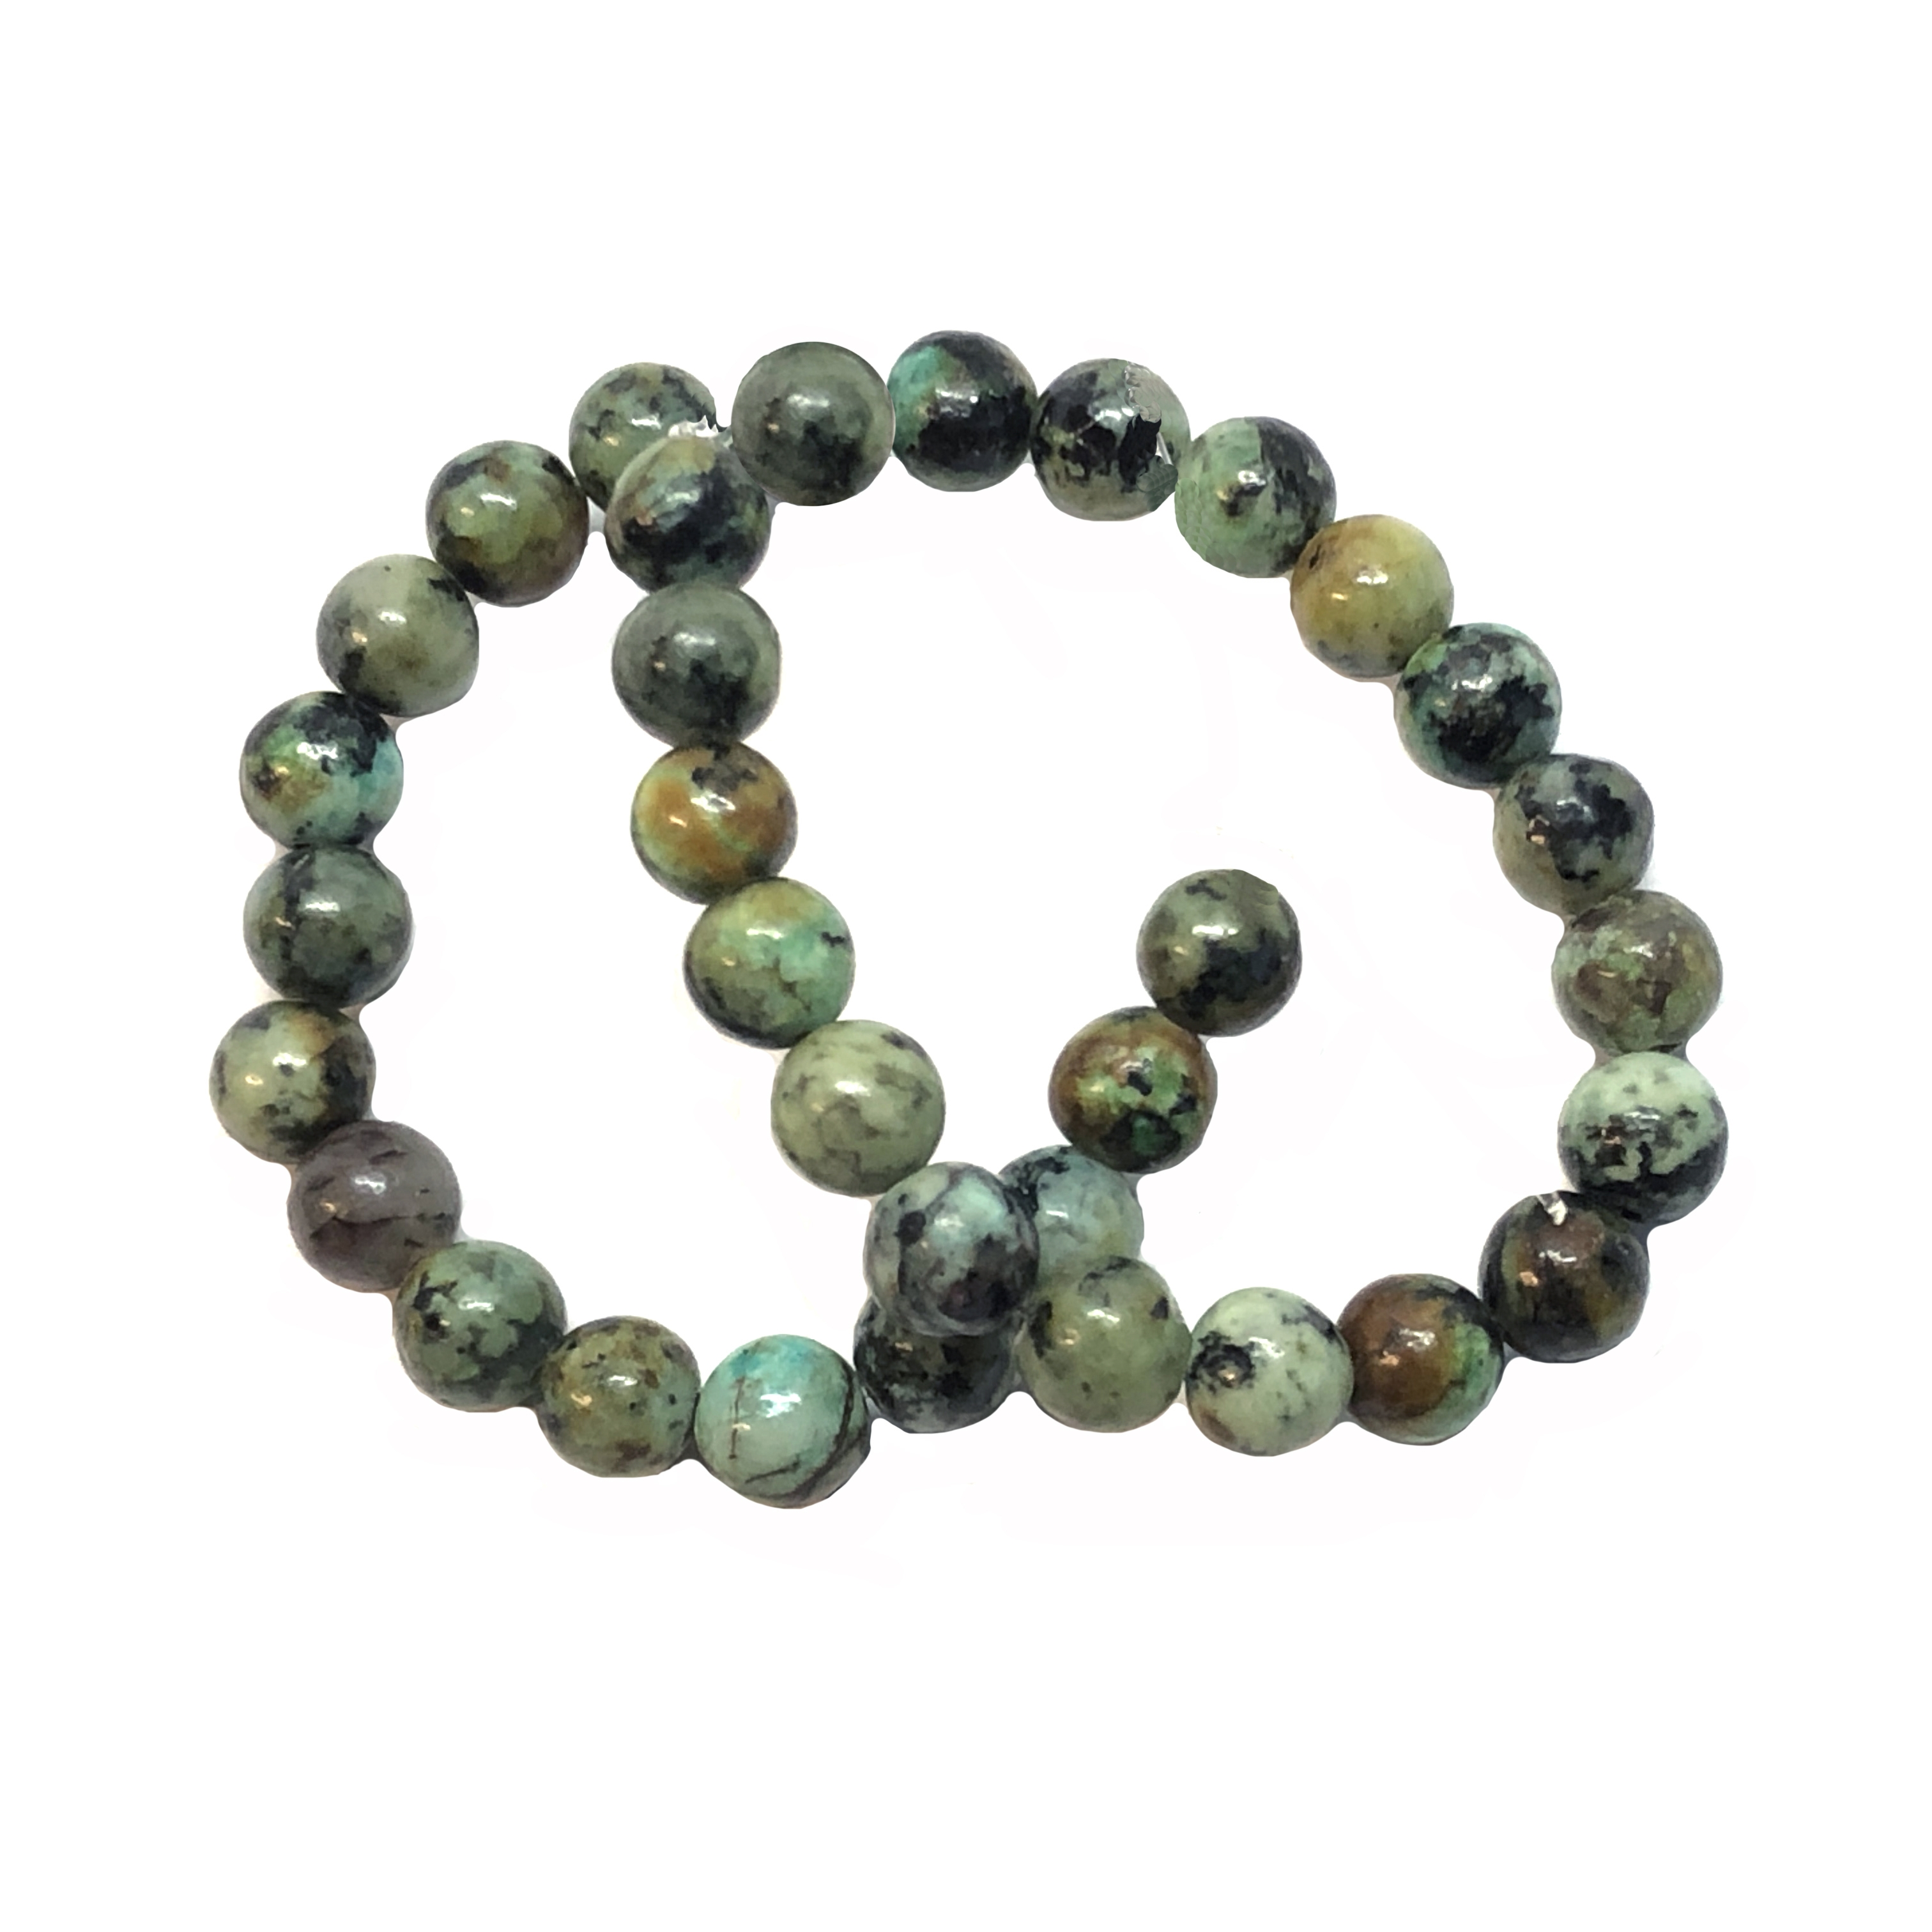 semi precious stone beads, African turquoise, earth tones, natural beads with earth tones, stone beads, turquoise, 6mm, 6mm stone beads, B'sue Boutiques, semi precious beads, 08804